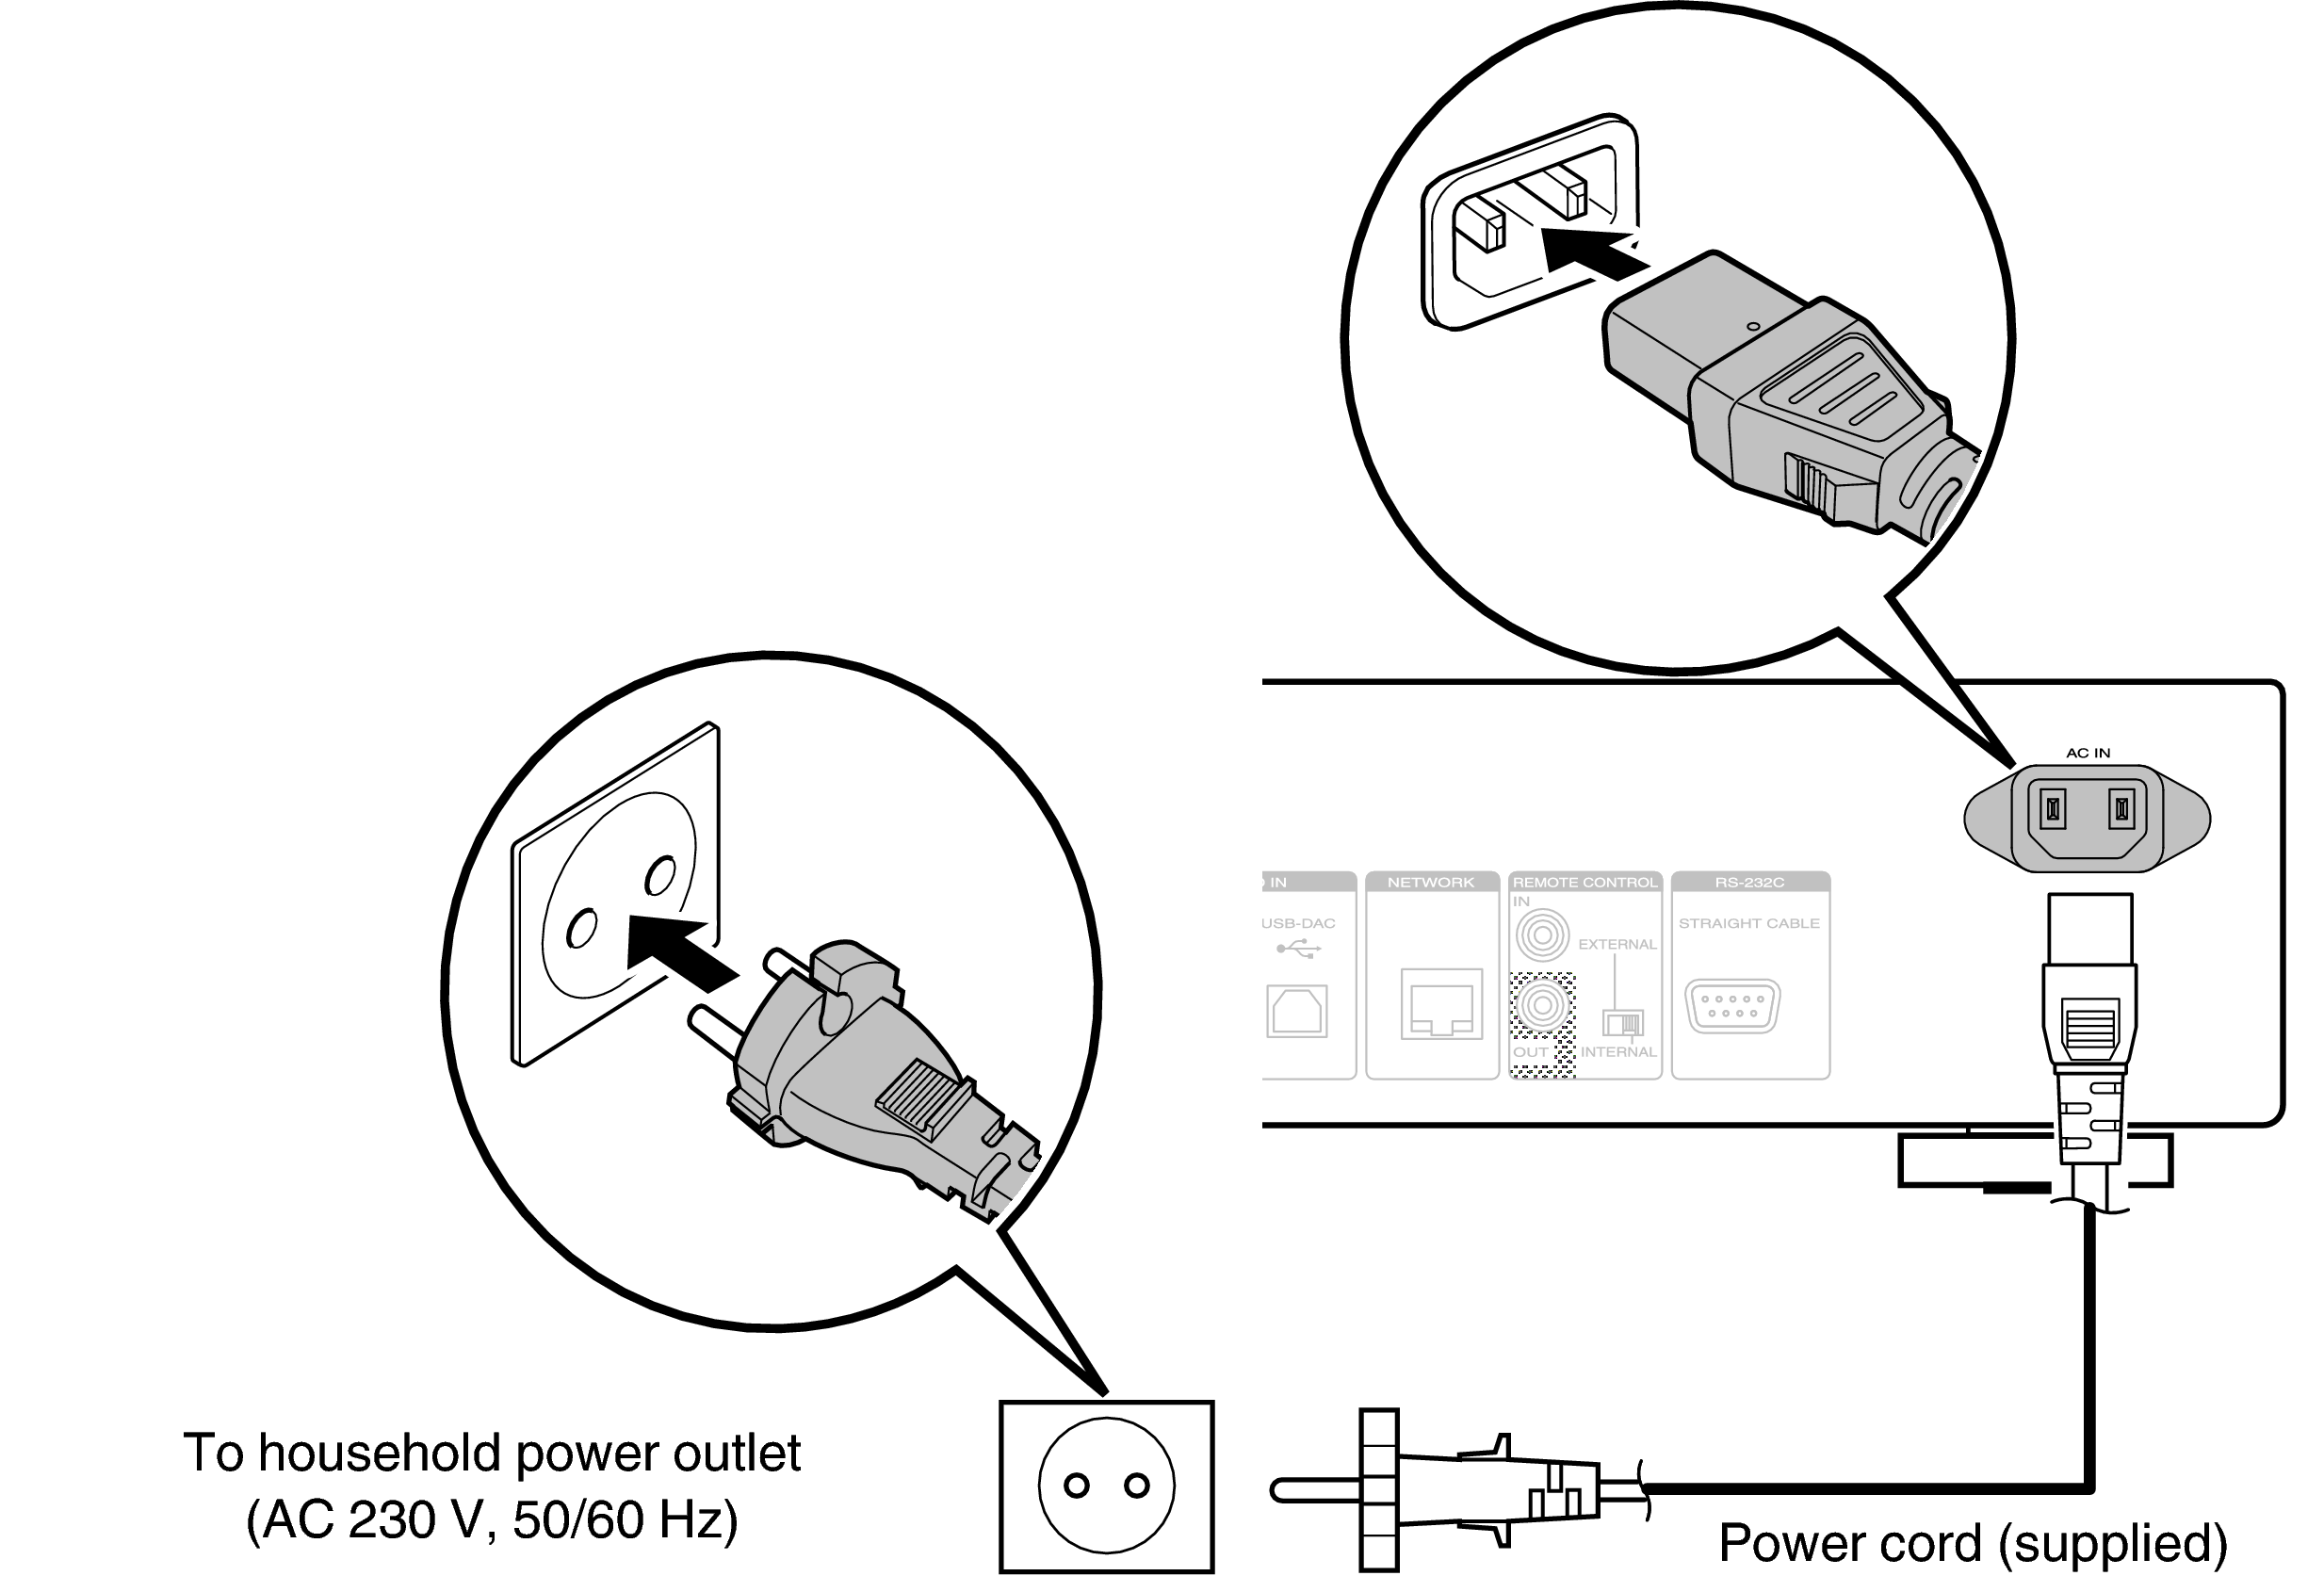 Connecting the power cord NA8005